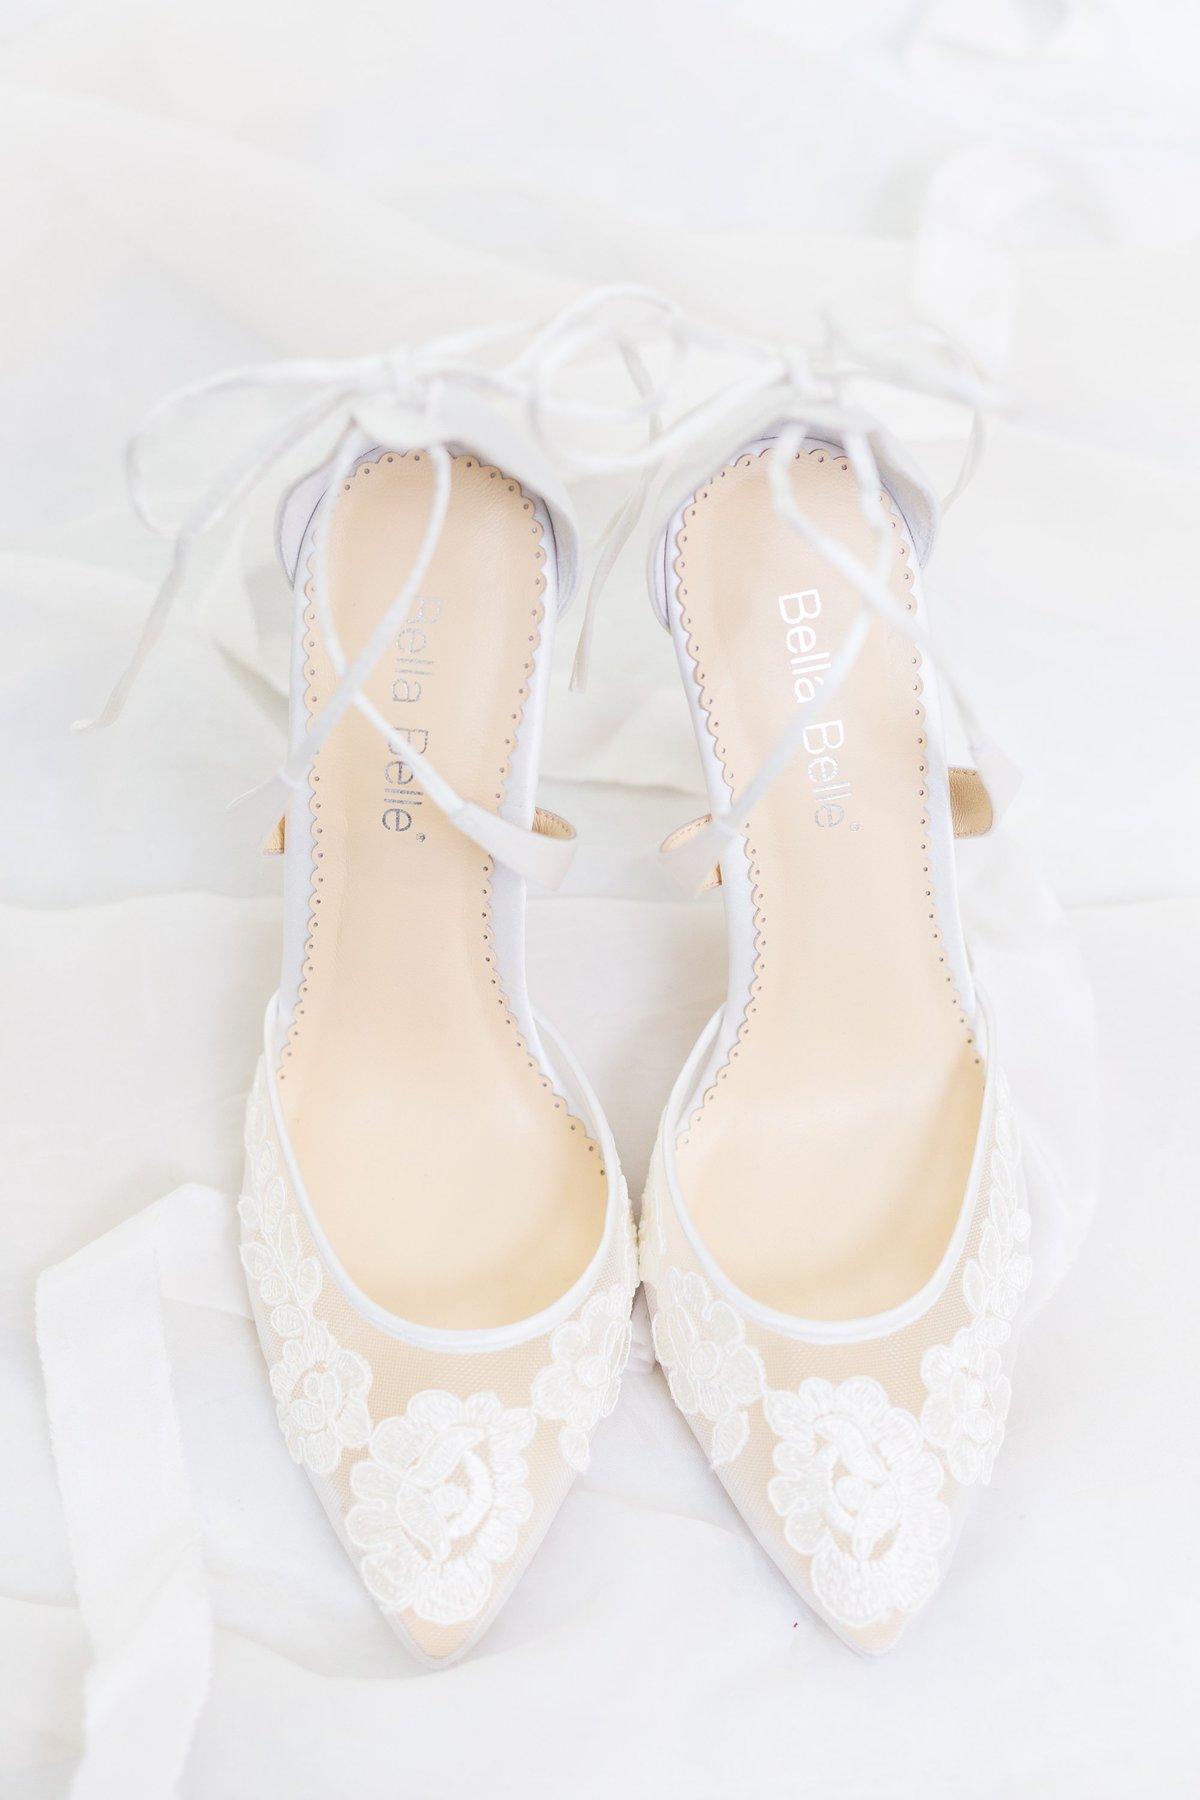 orlando-florida-estate-wedding-bella-belle-shoes-chris-sosa-photography-2